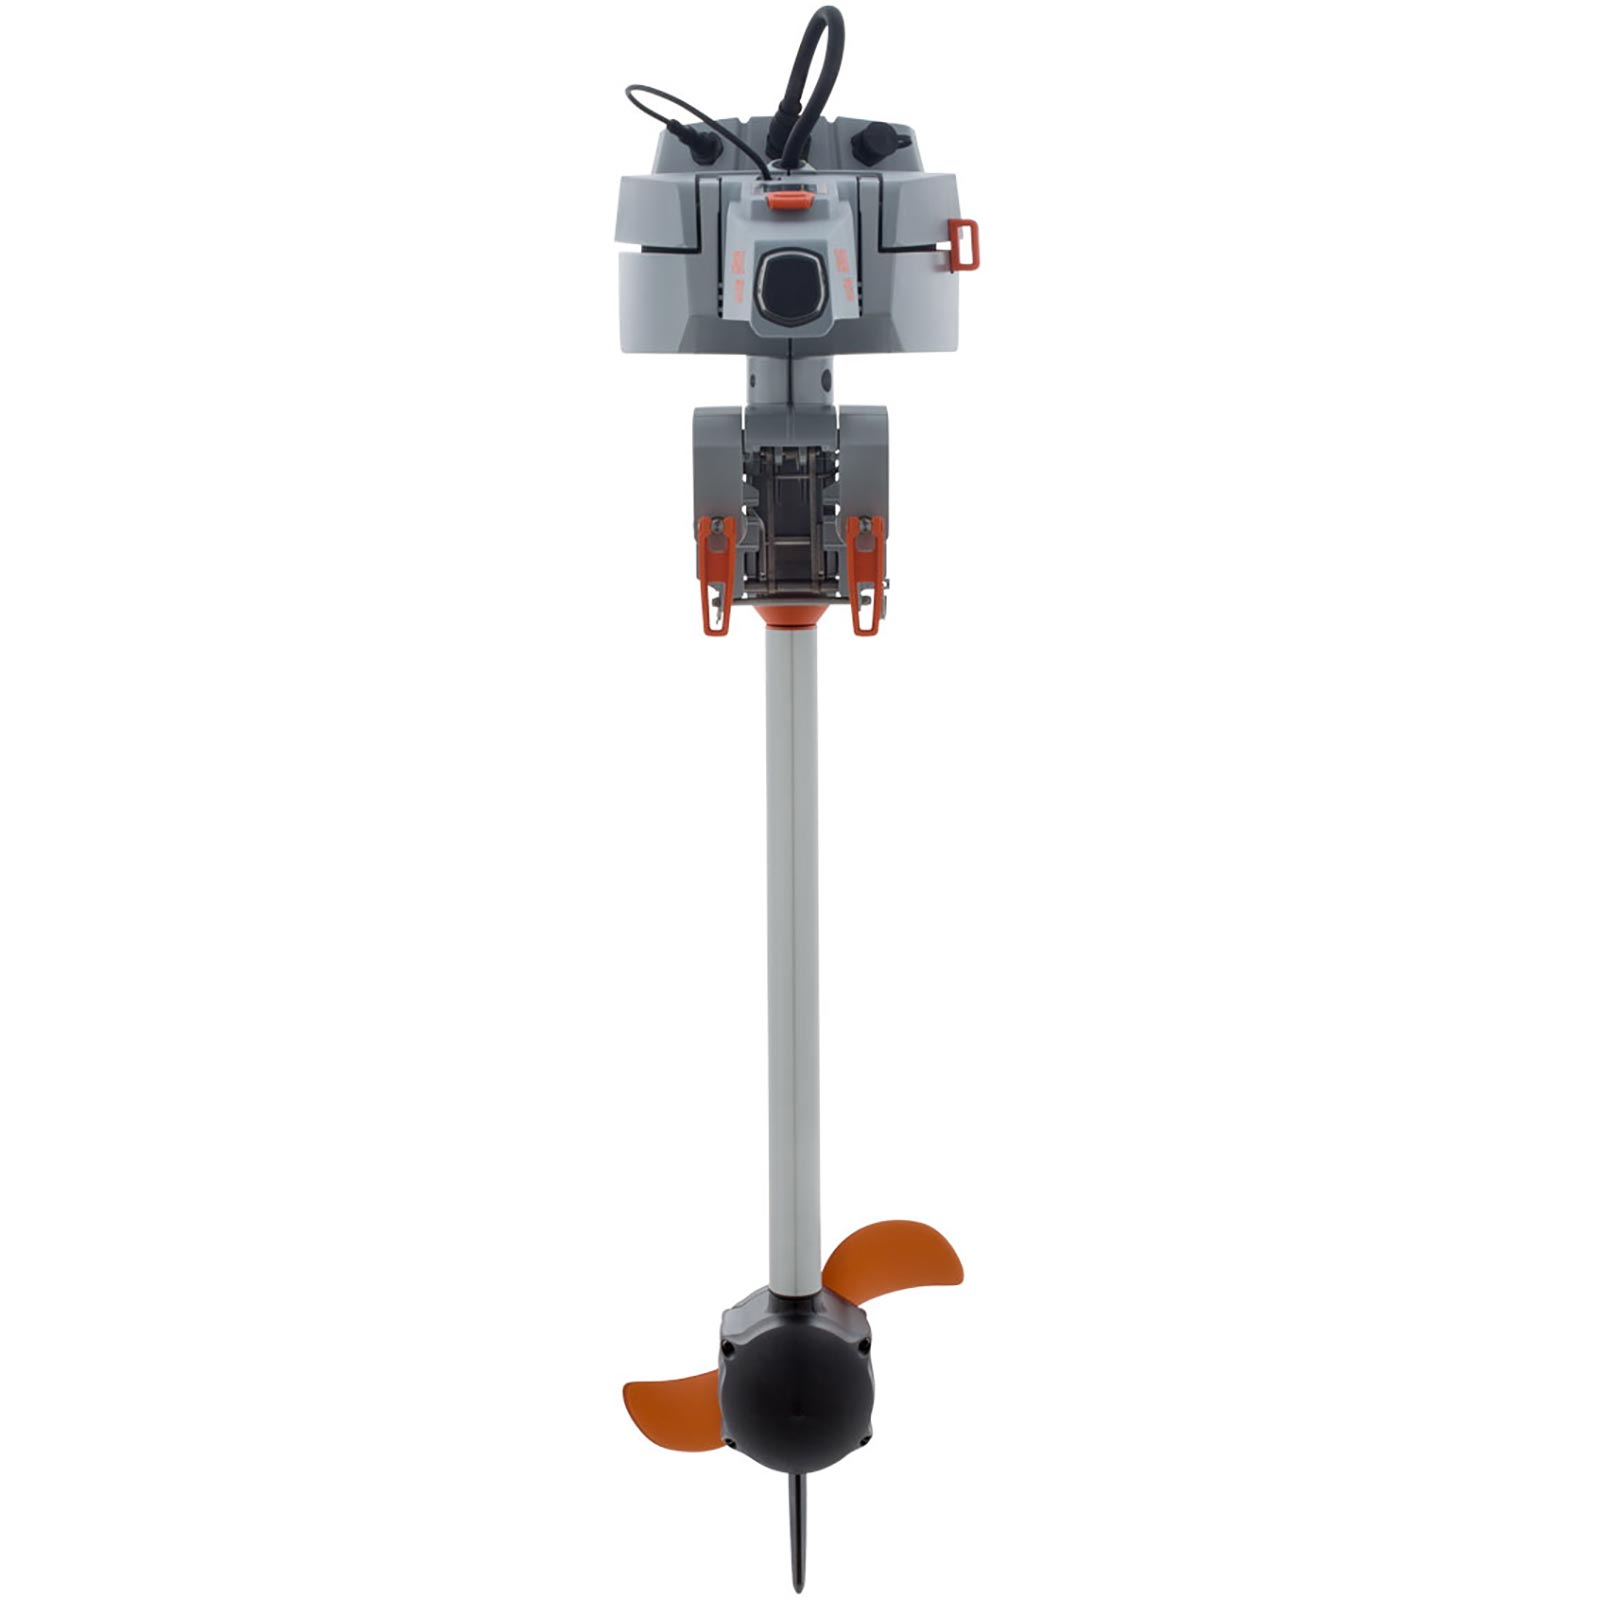 Torqeedo Travel 603 Electric Outboard Motor Front View